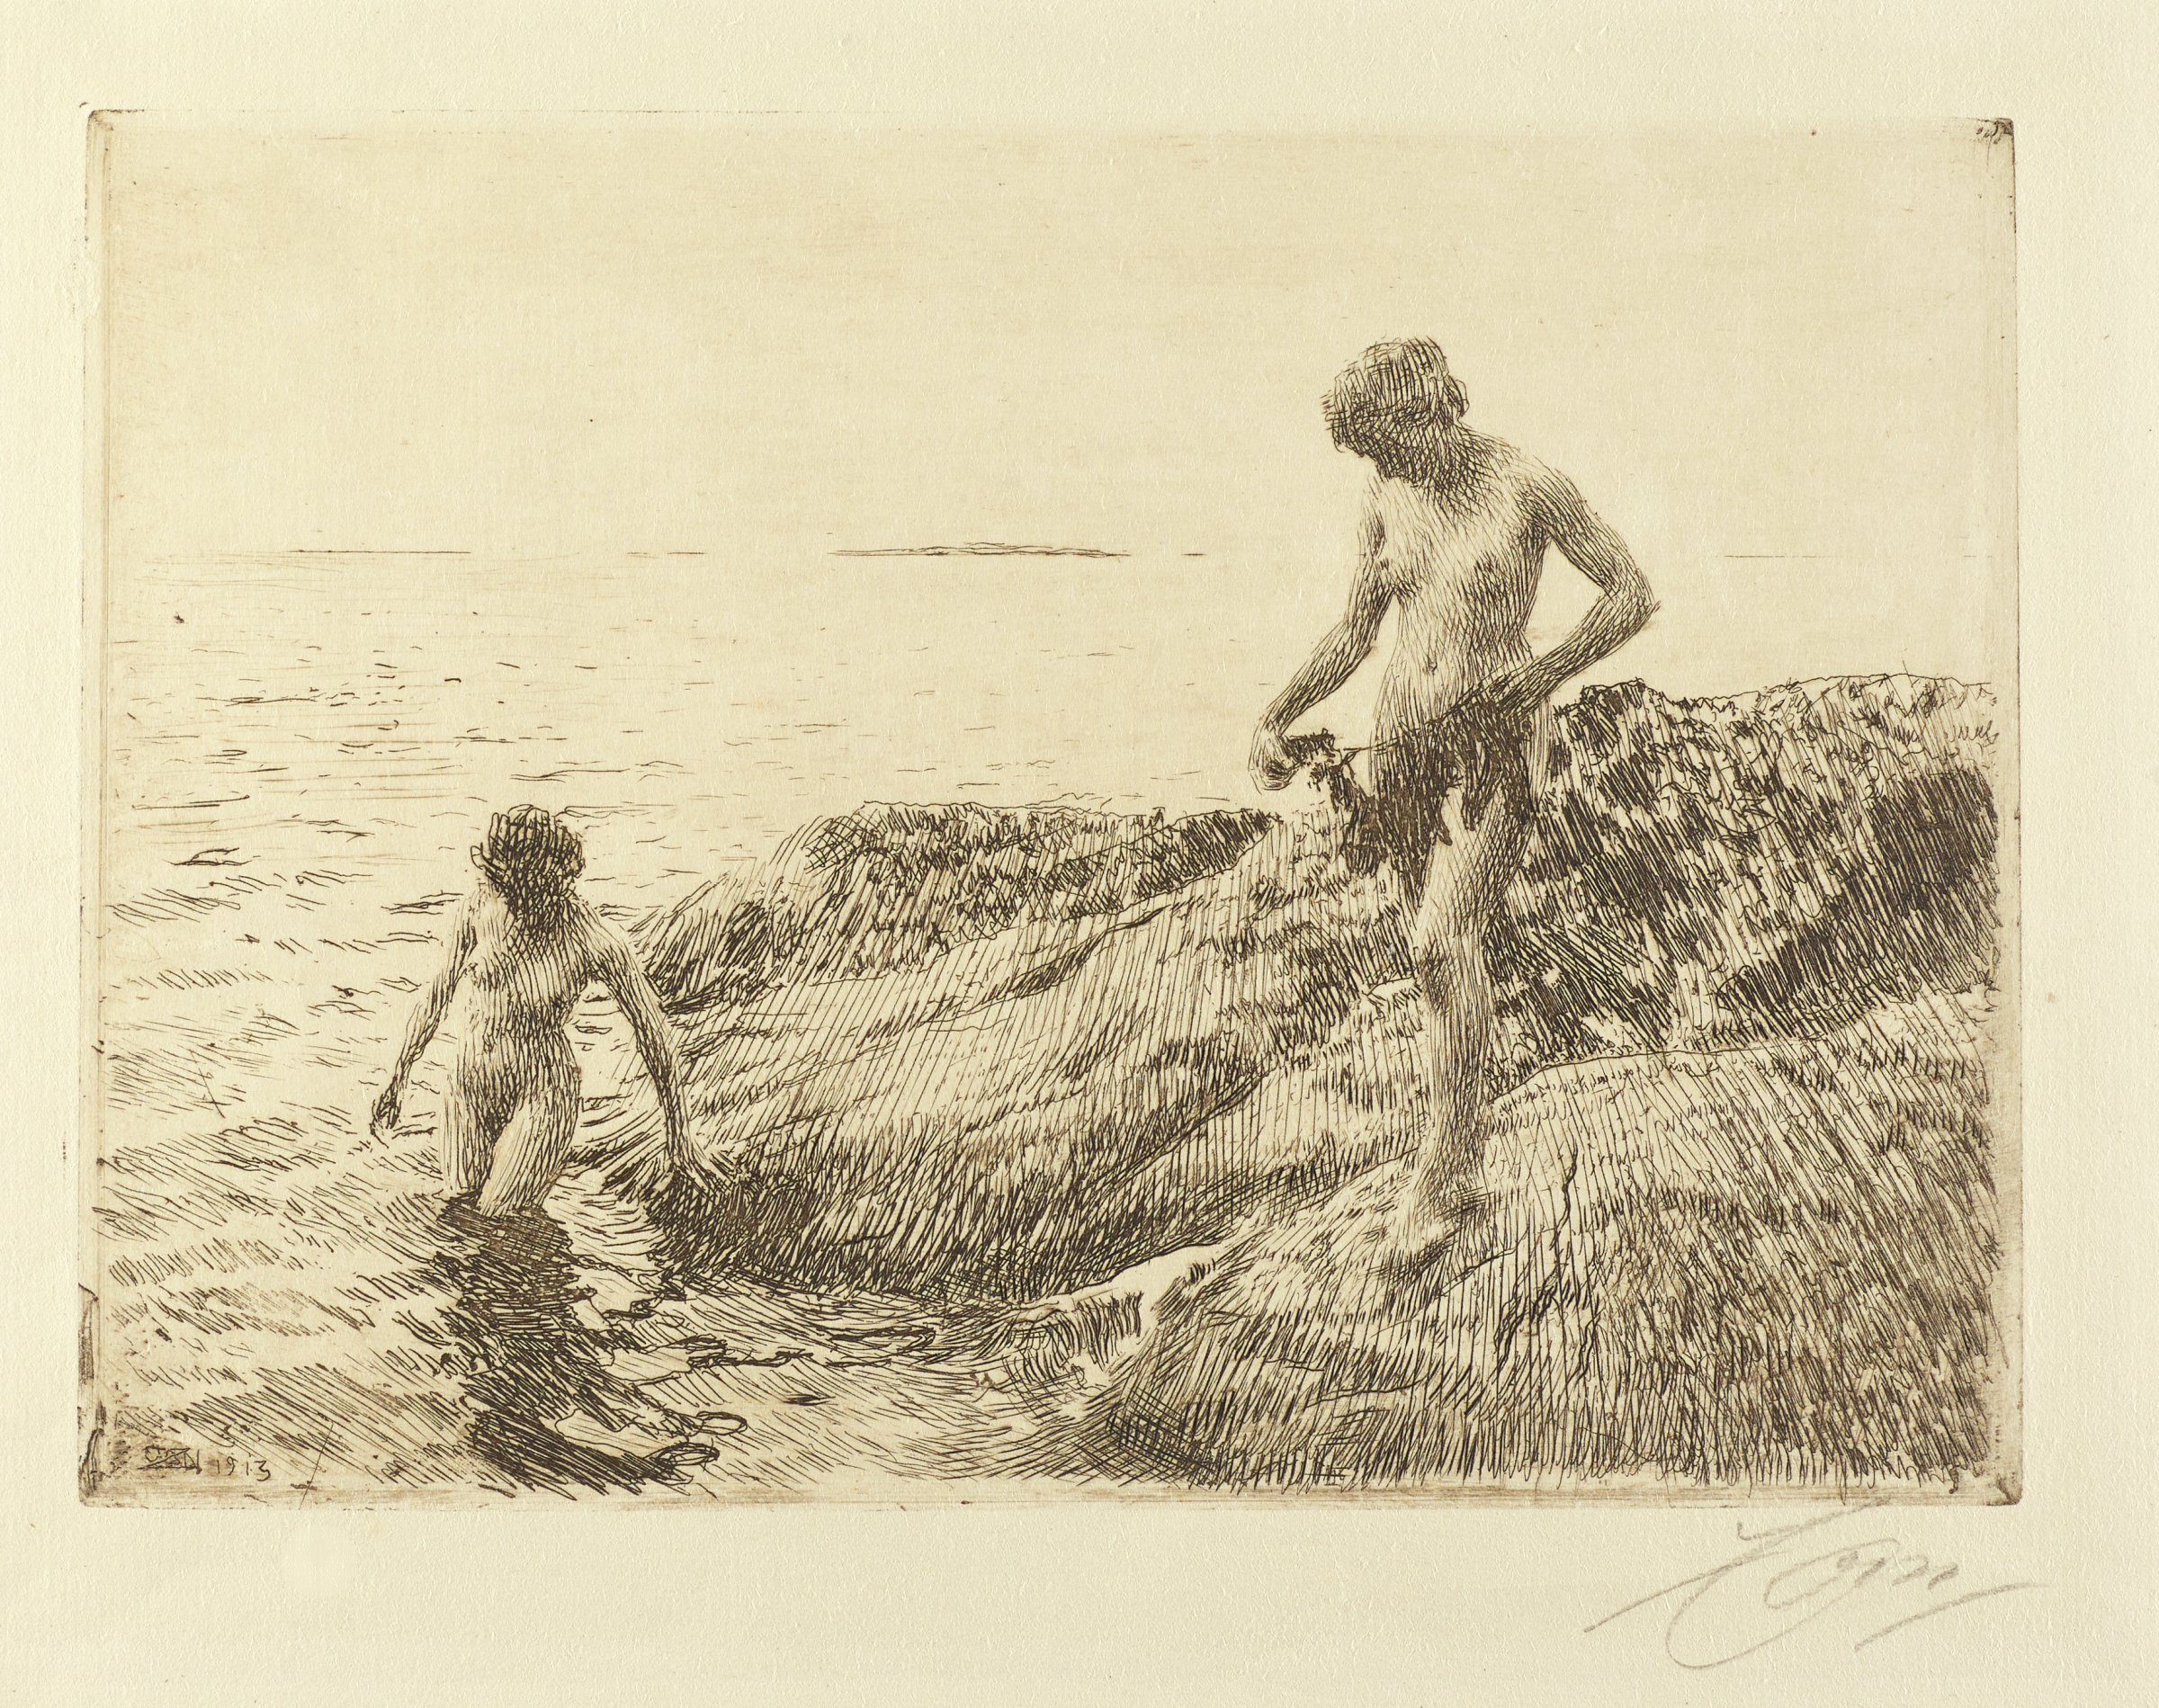 Two nude women on the rocky shore of a sea. One woman stands in the water that is up to her thighs with one hand still holding onto a rock. The other woman stands on the shore holding a seaweed-like object in her hands. Both look downward at the water.